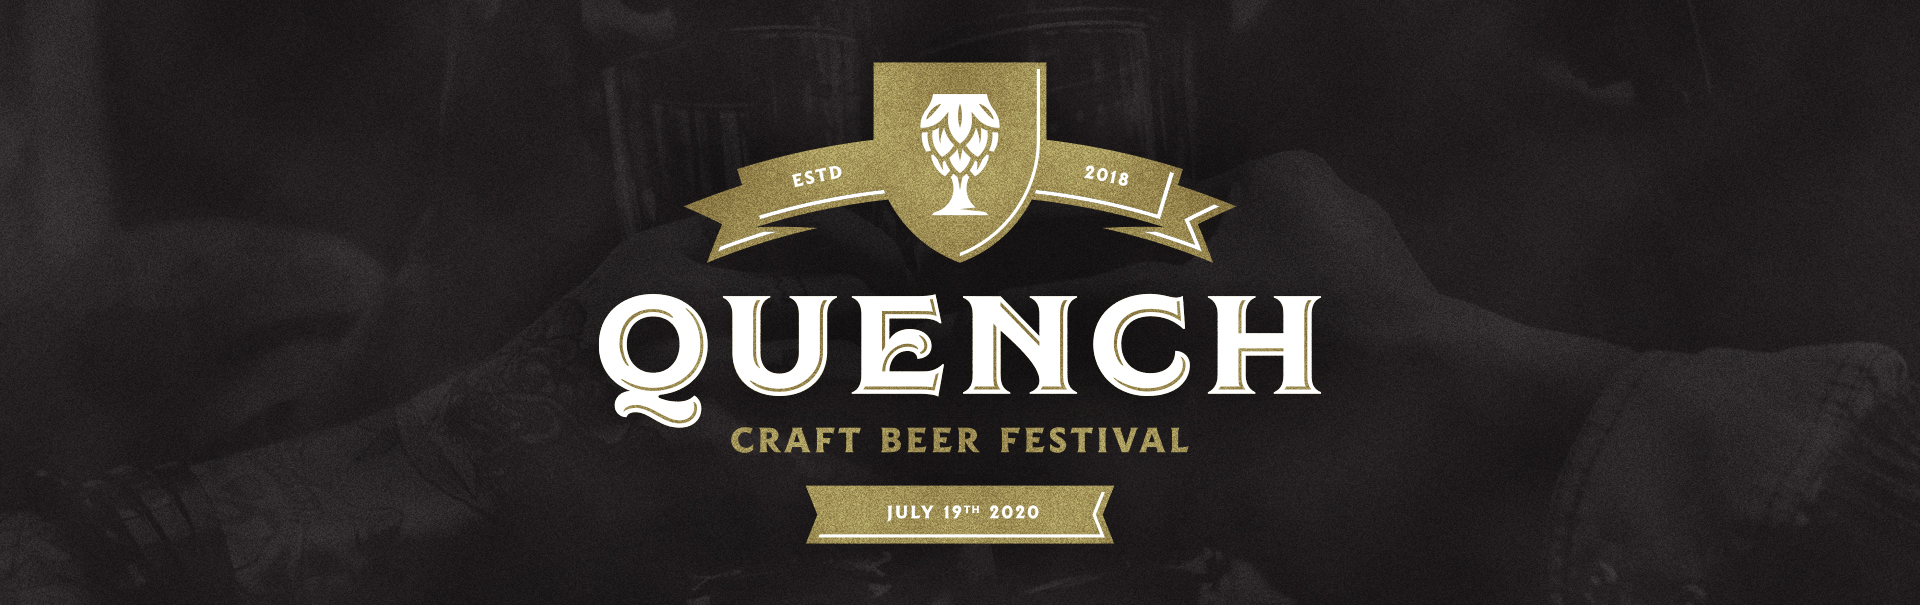 Tickets for Quench Craft Beer Festival in St. Catharines from ShowClix